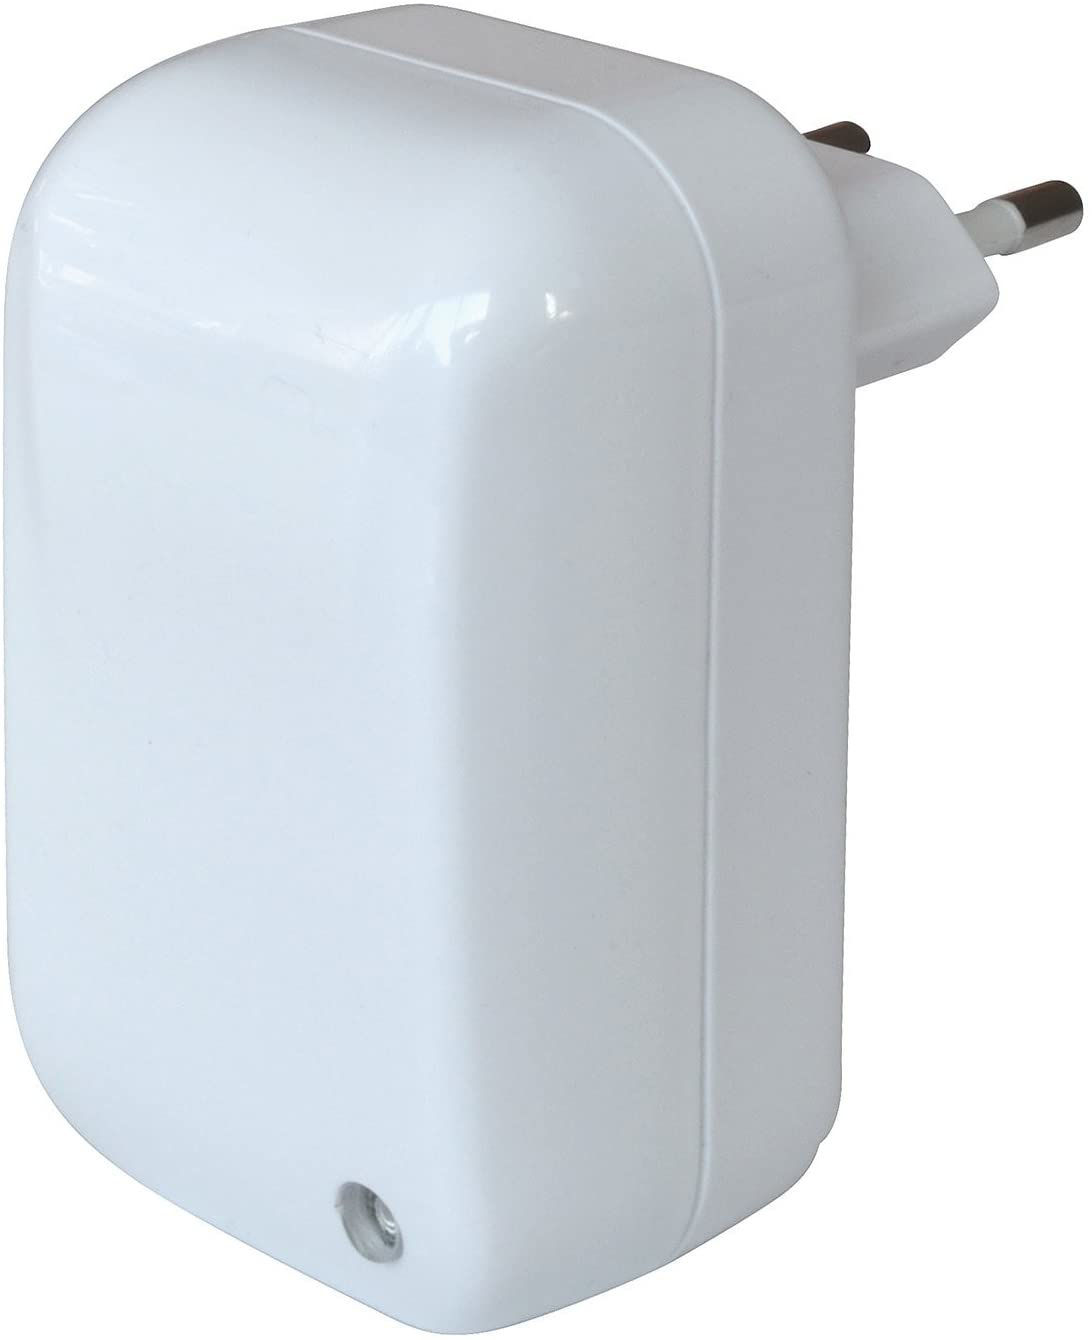 Picture of brennenstuhl usb charger